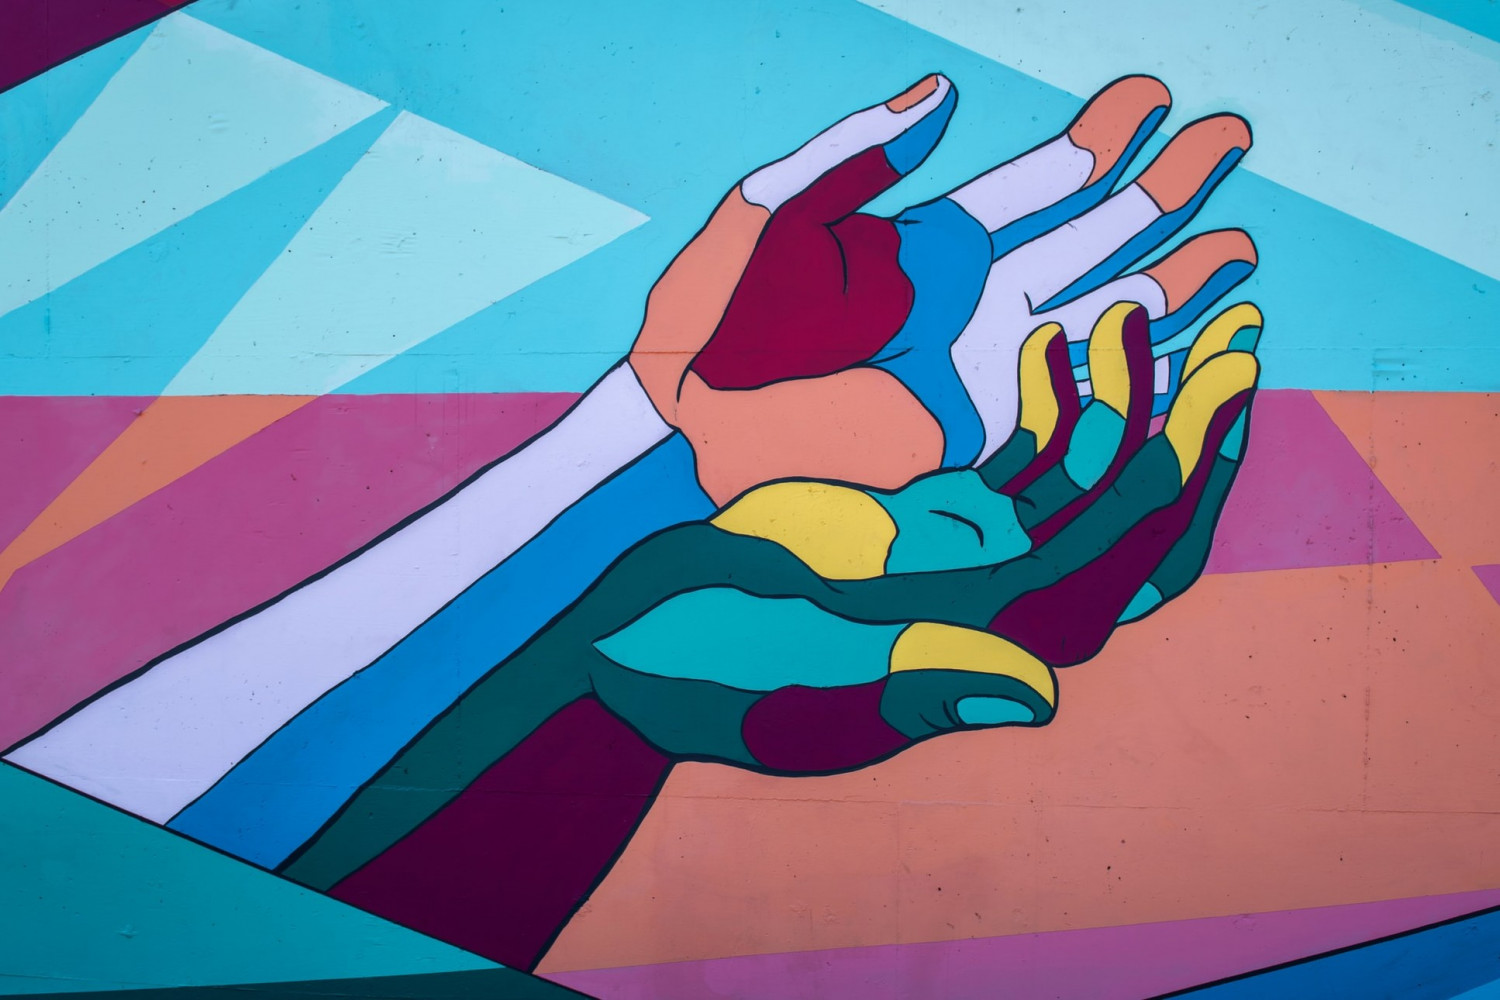 Image of wall mural showing outstretched hands